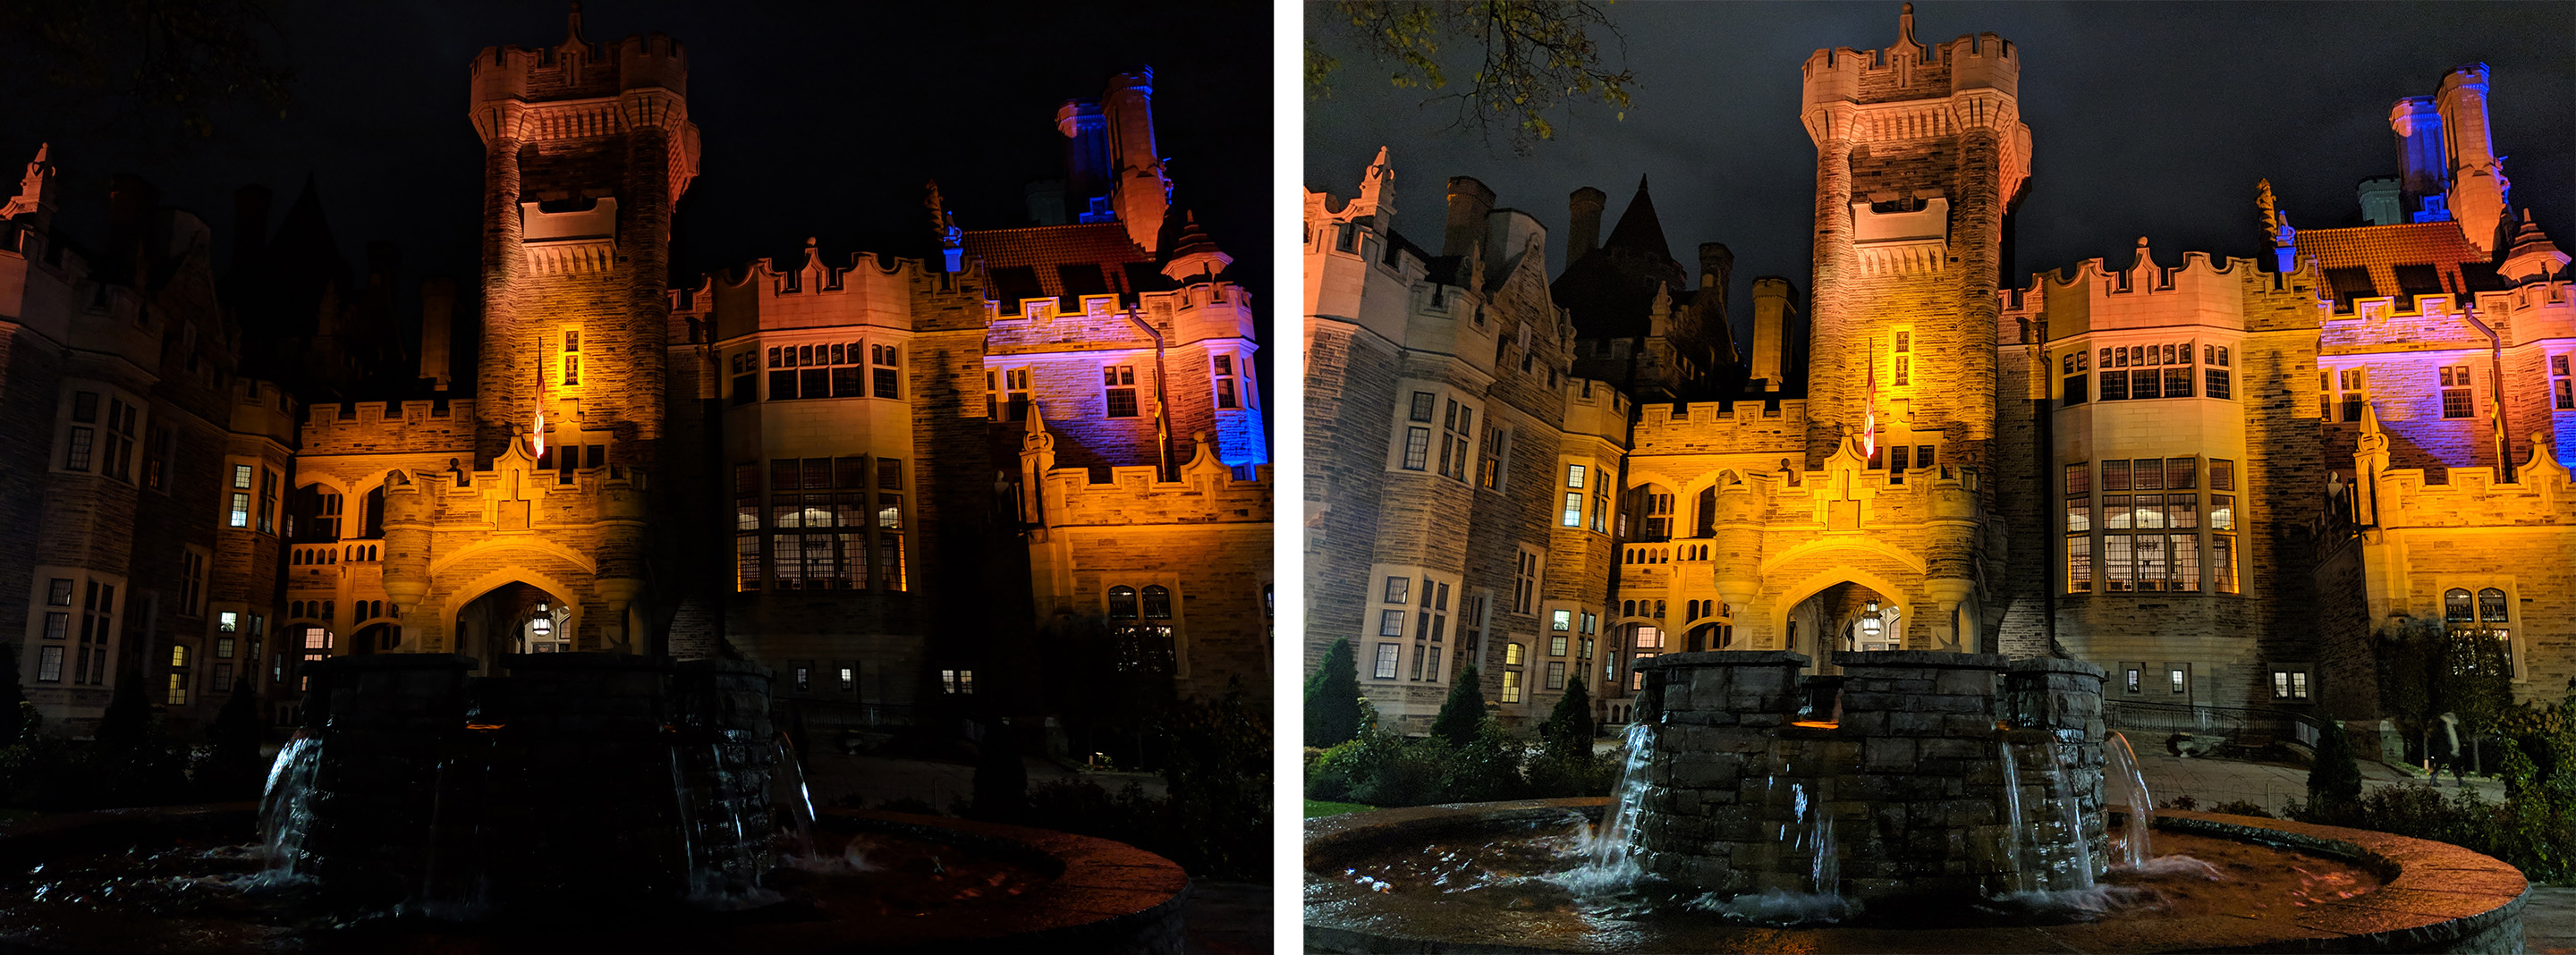 Pixel 3 Night Sight comparison